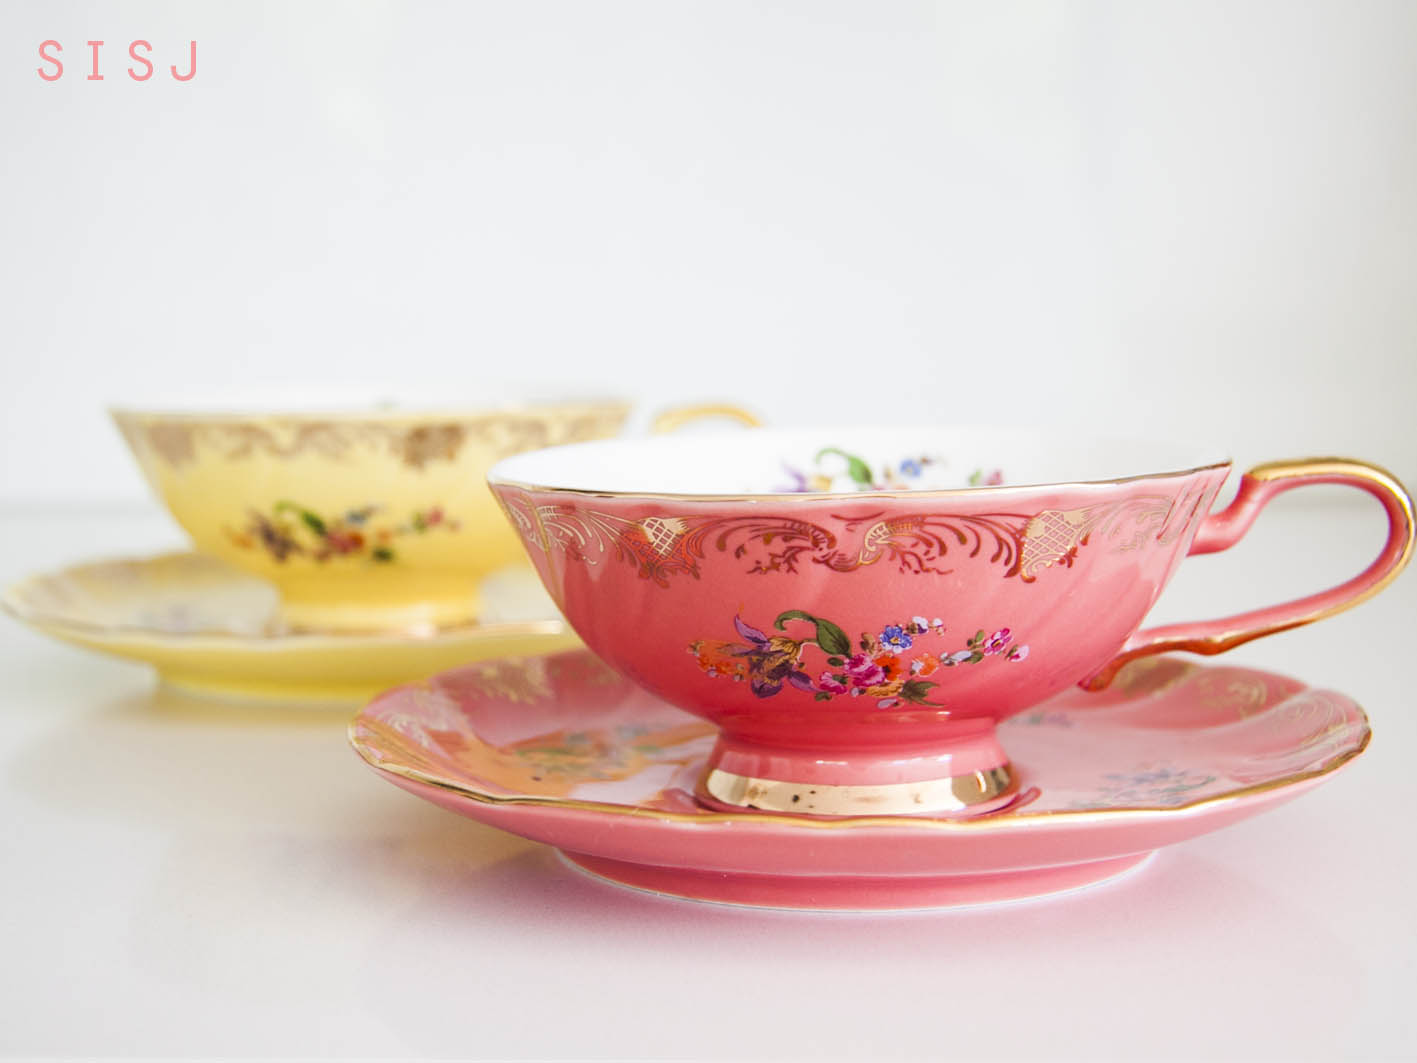 Its Tea Time She Is Sarah Jane Dilmah Rose With French Vanilla T2 Floral Cup And Saucer